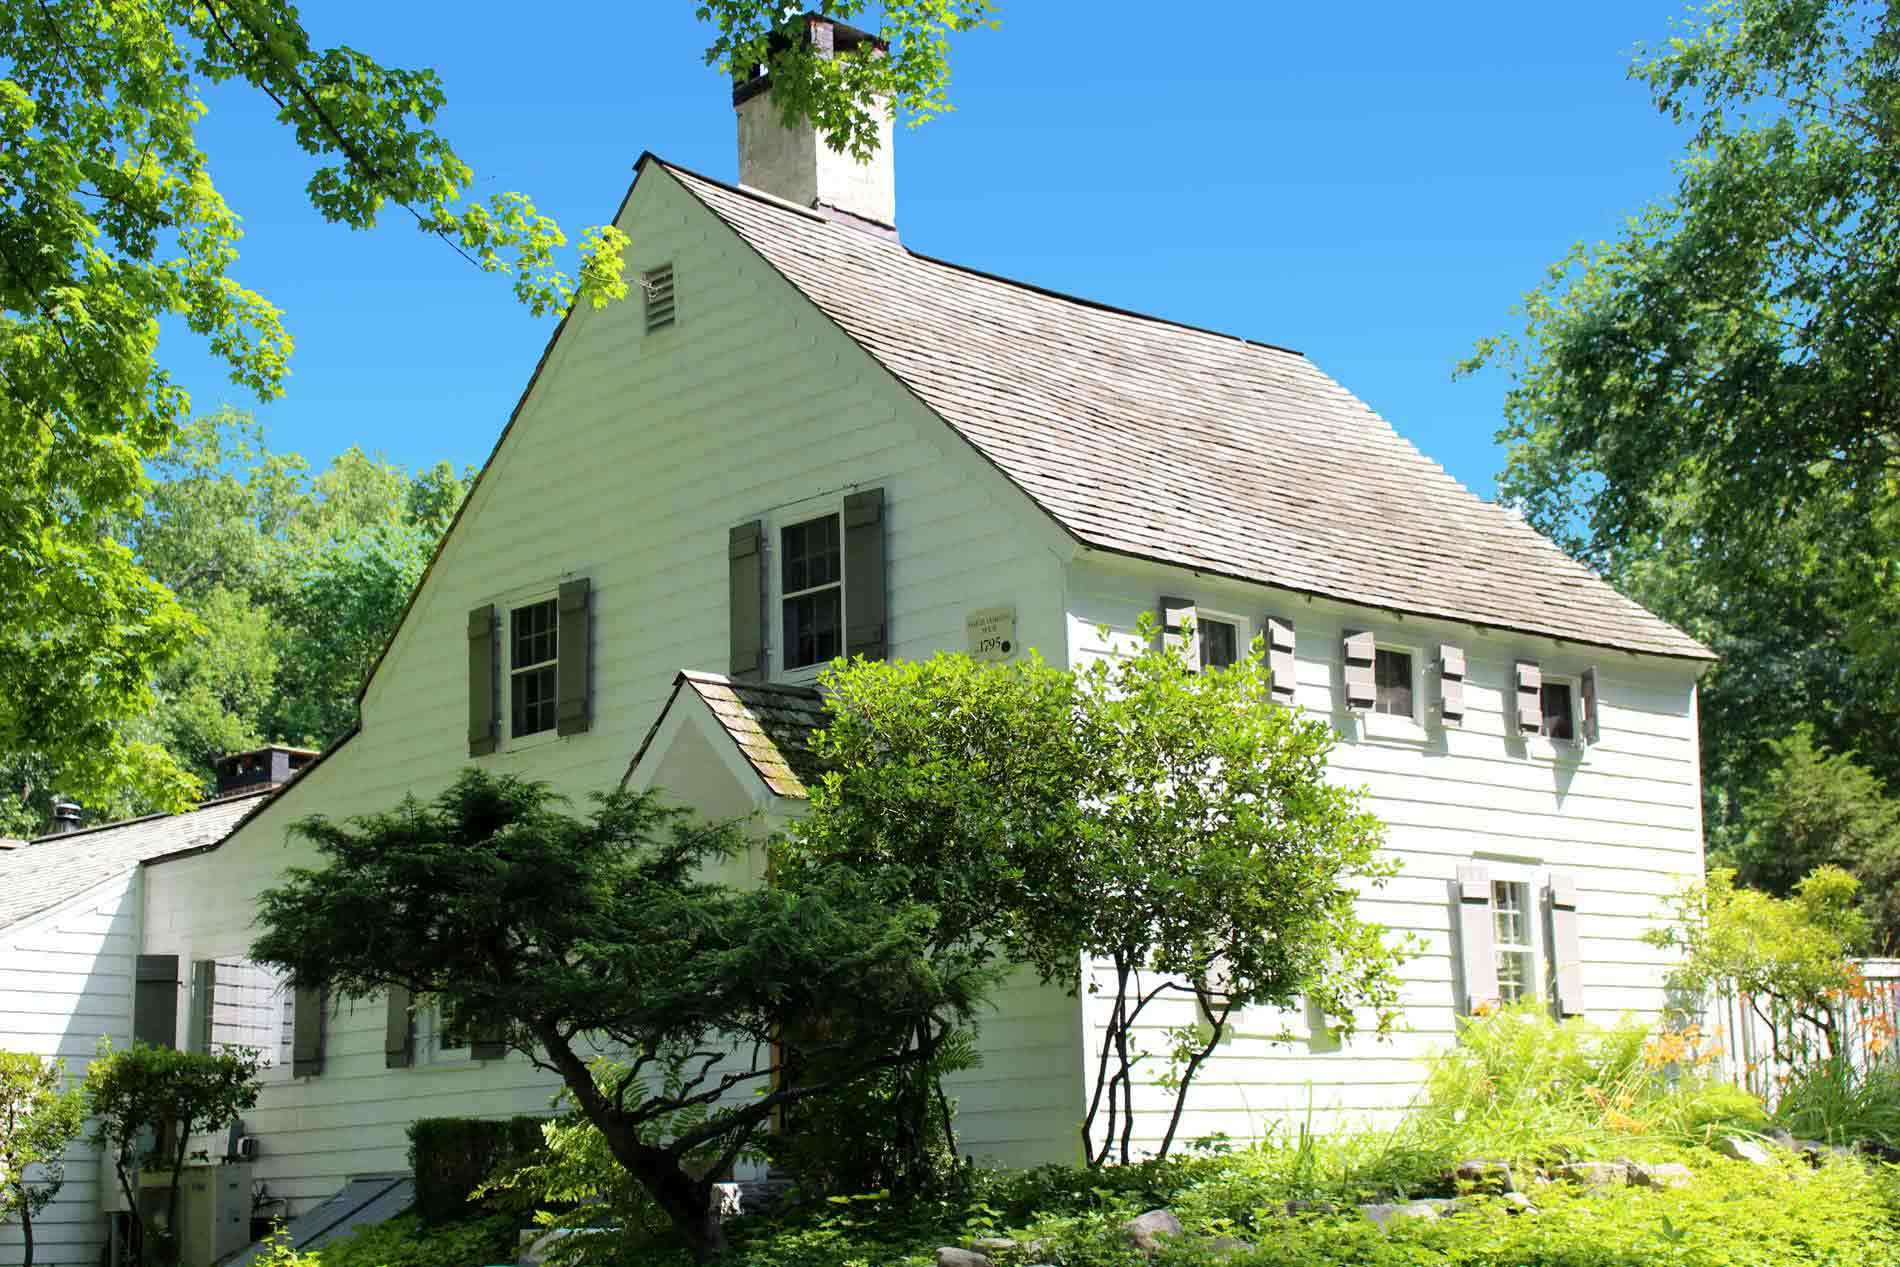 antique homes for sale in redding ct find and buy old historic houses dagny 39 s real estate. Black Bedroom Furniture Sets. Home Design Ideas